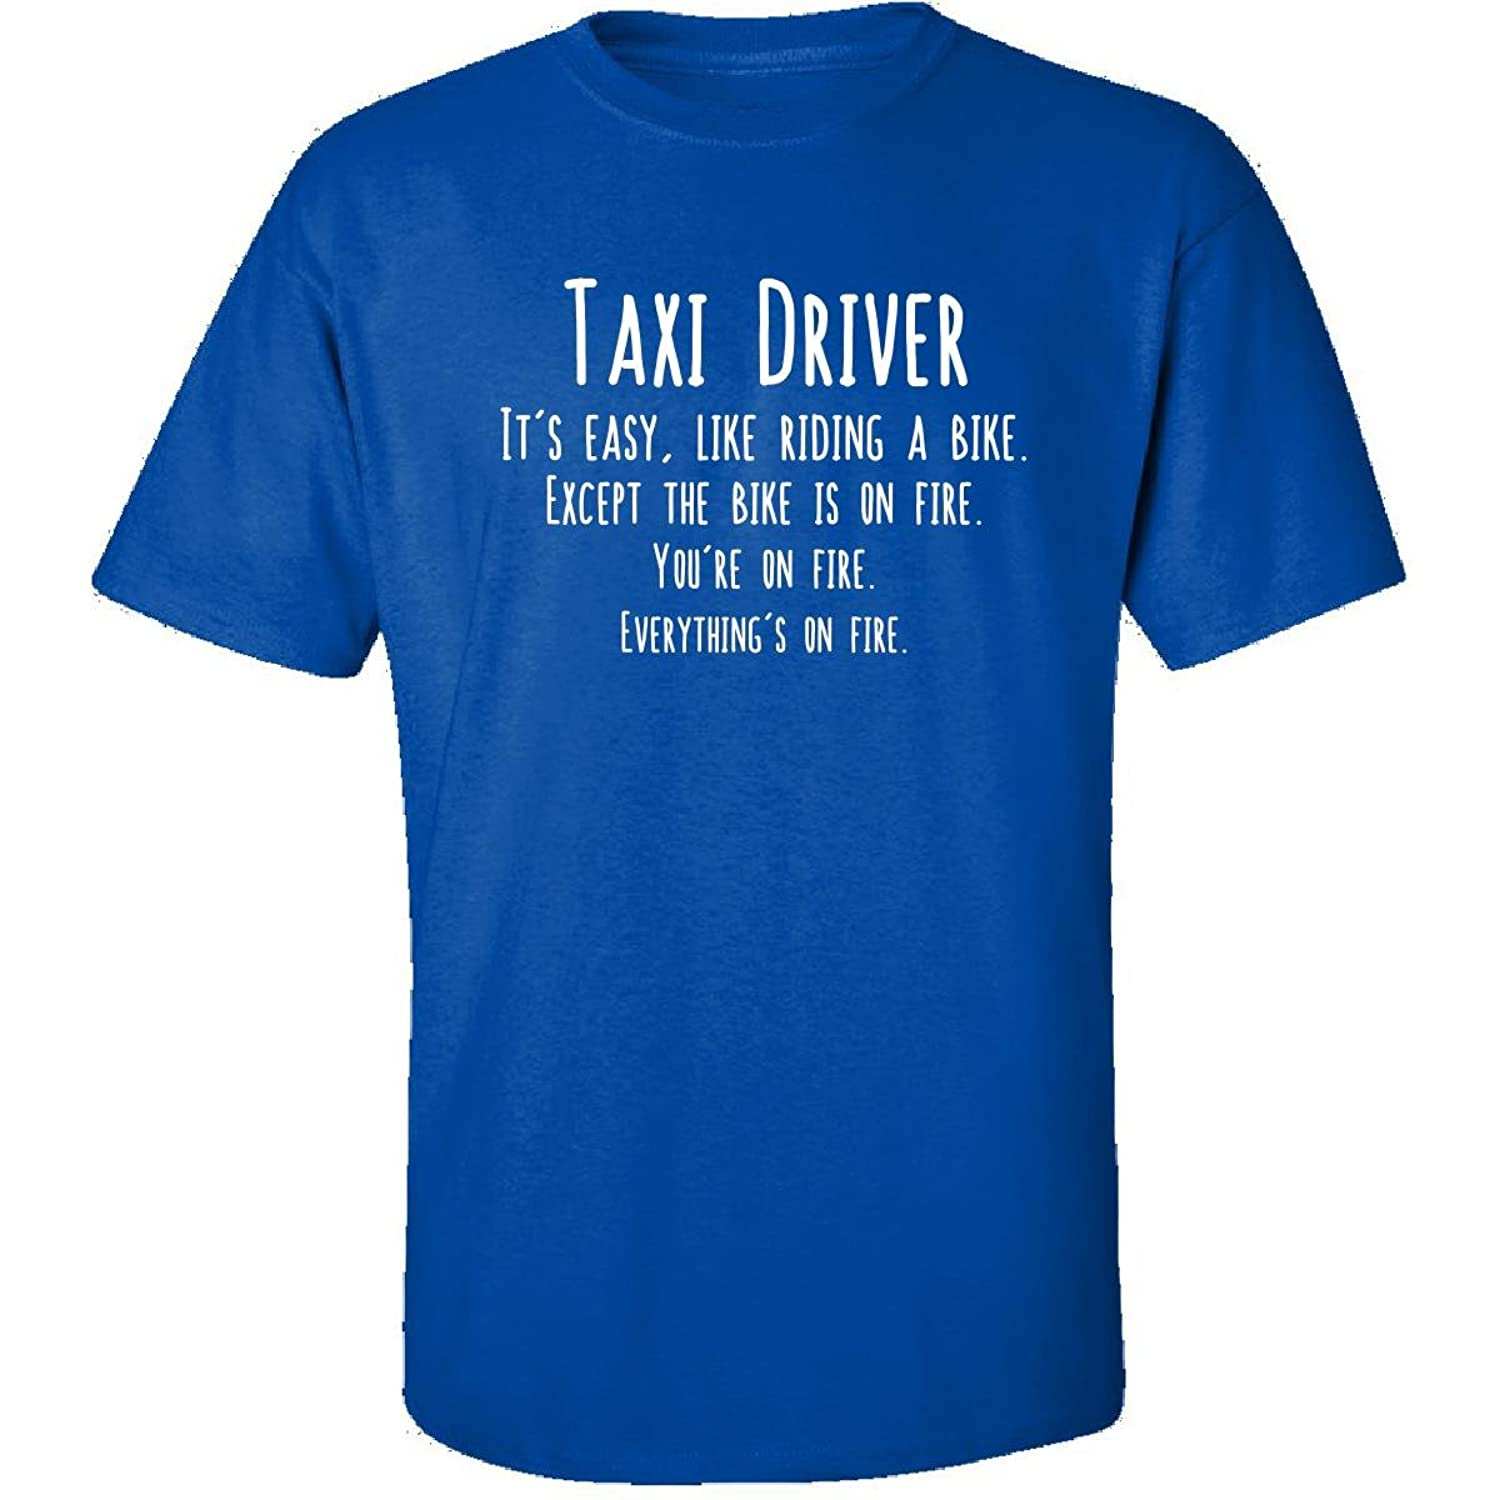 Taxi Driver Is Easy Like Riding Bike On Fire Funny Job - Adult Shirt